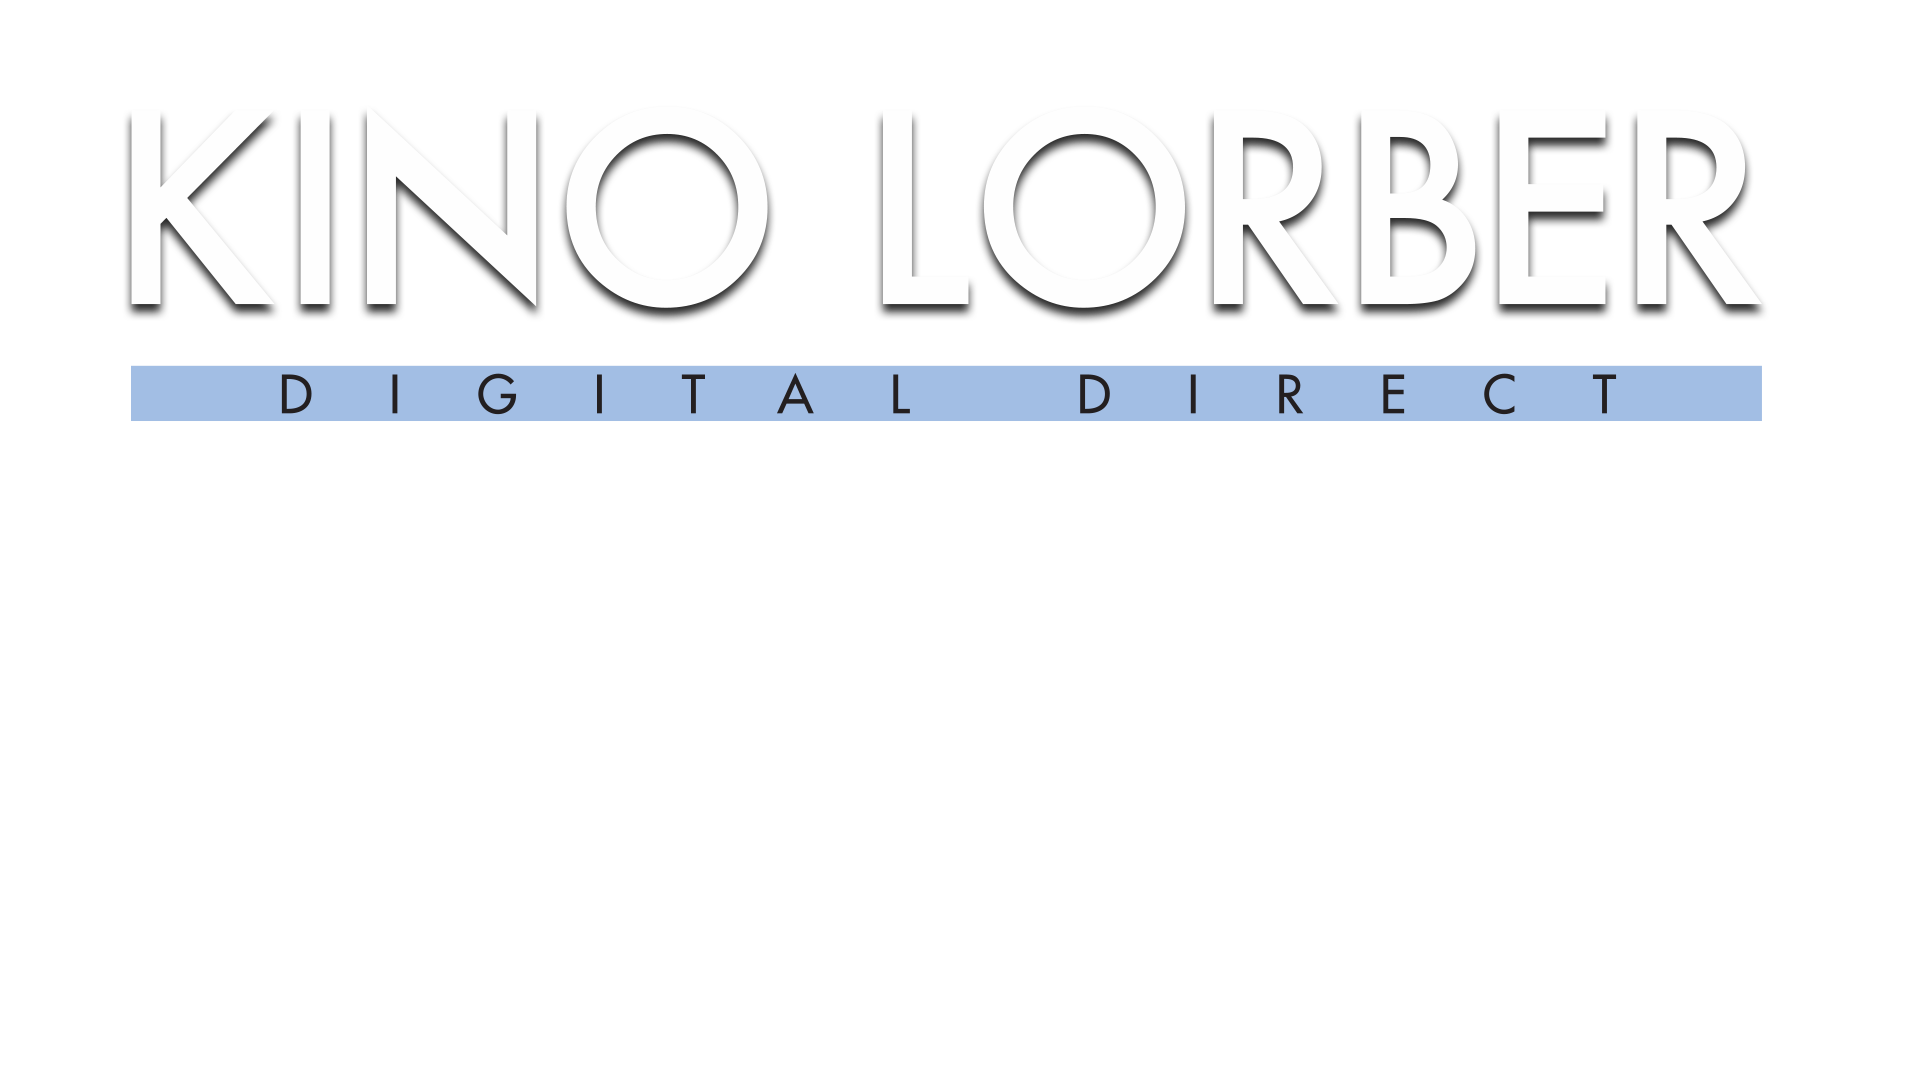 Kino Lorber Digital Direct